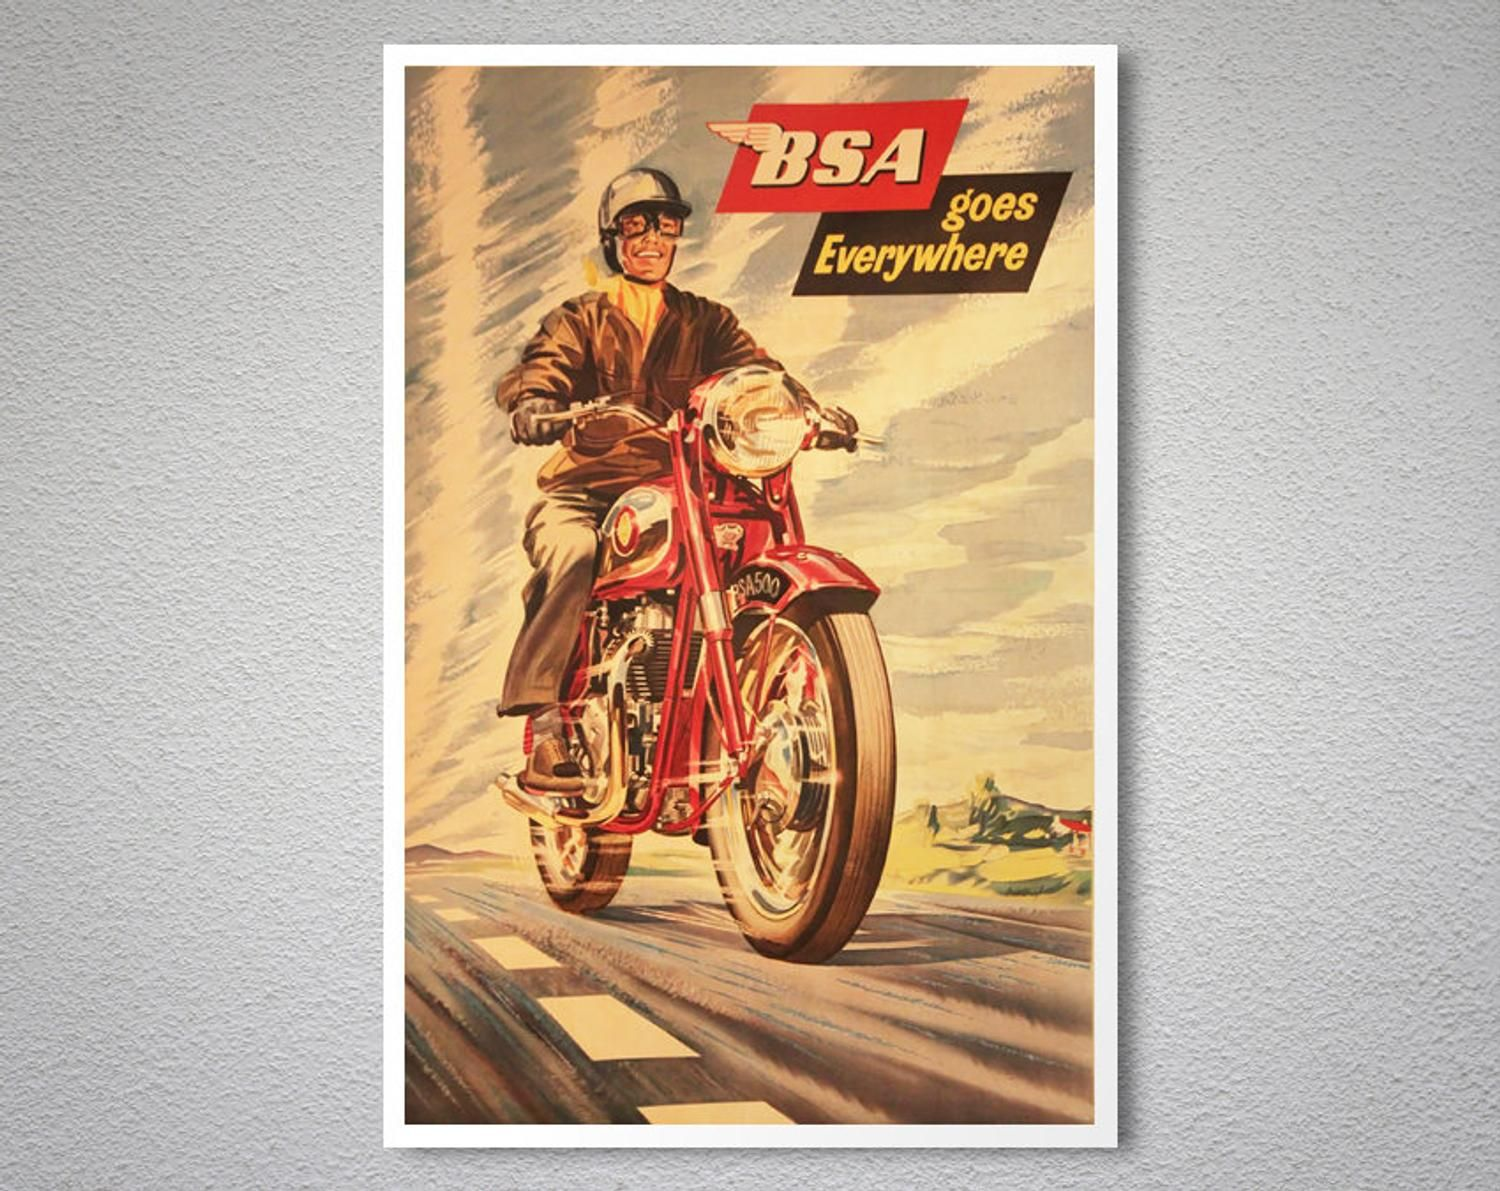 Bsa Goes Everywhere Vintage Motorcycle Poster Poster Paper Sticker Or Canvas Print Gift Ide In 2021 Canvas Prints Vintage Motorcycle Posters Motorcycle Christmas Gifts